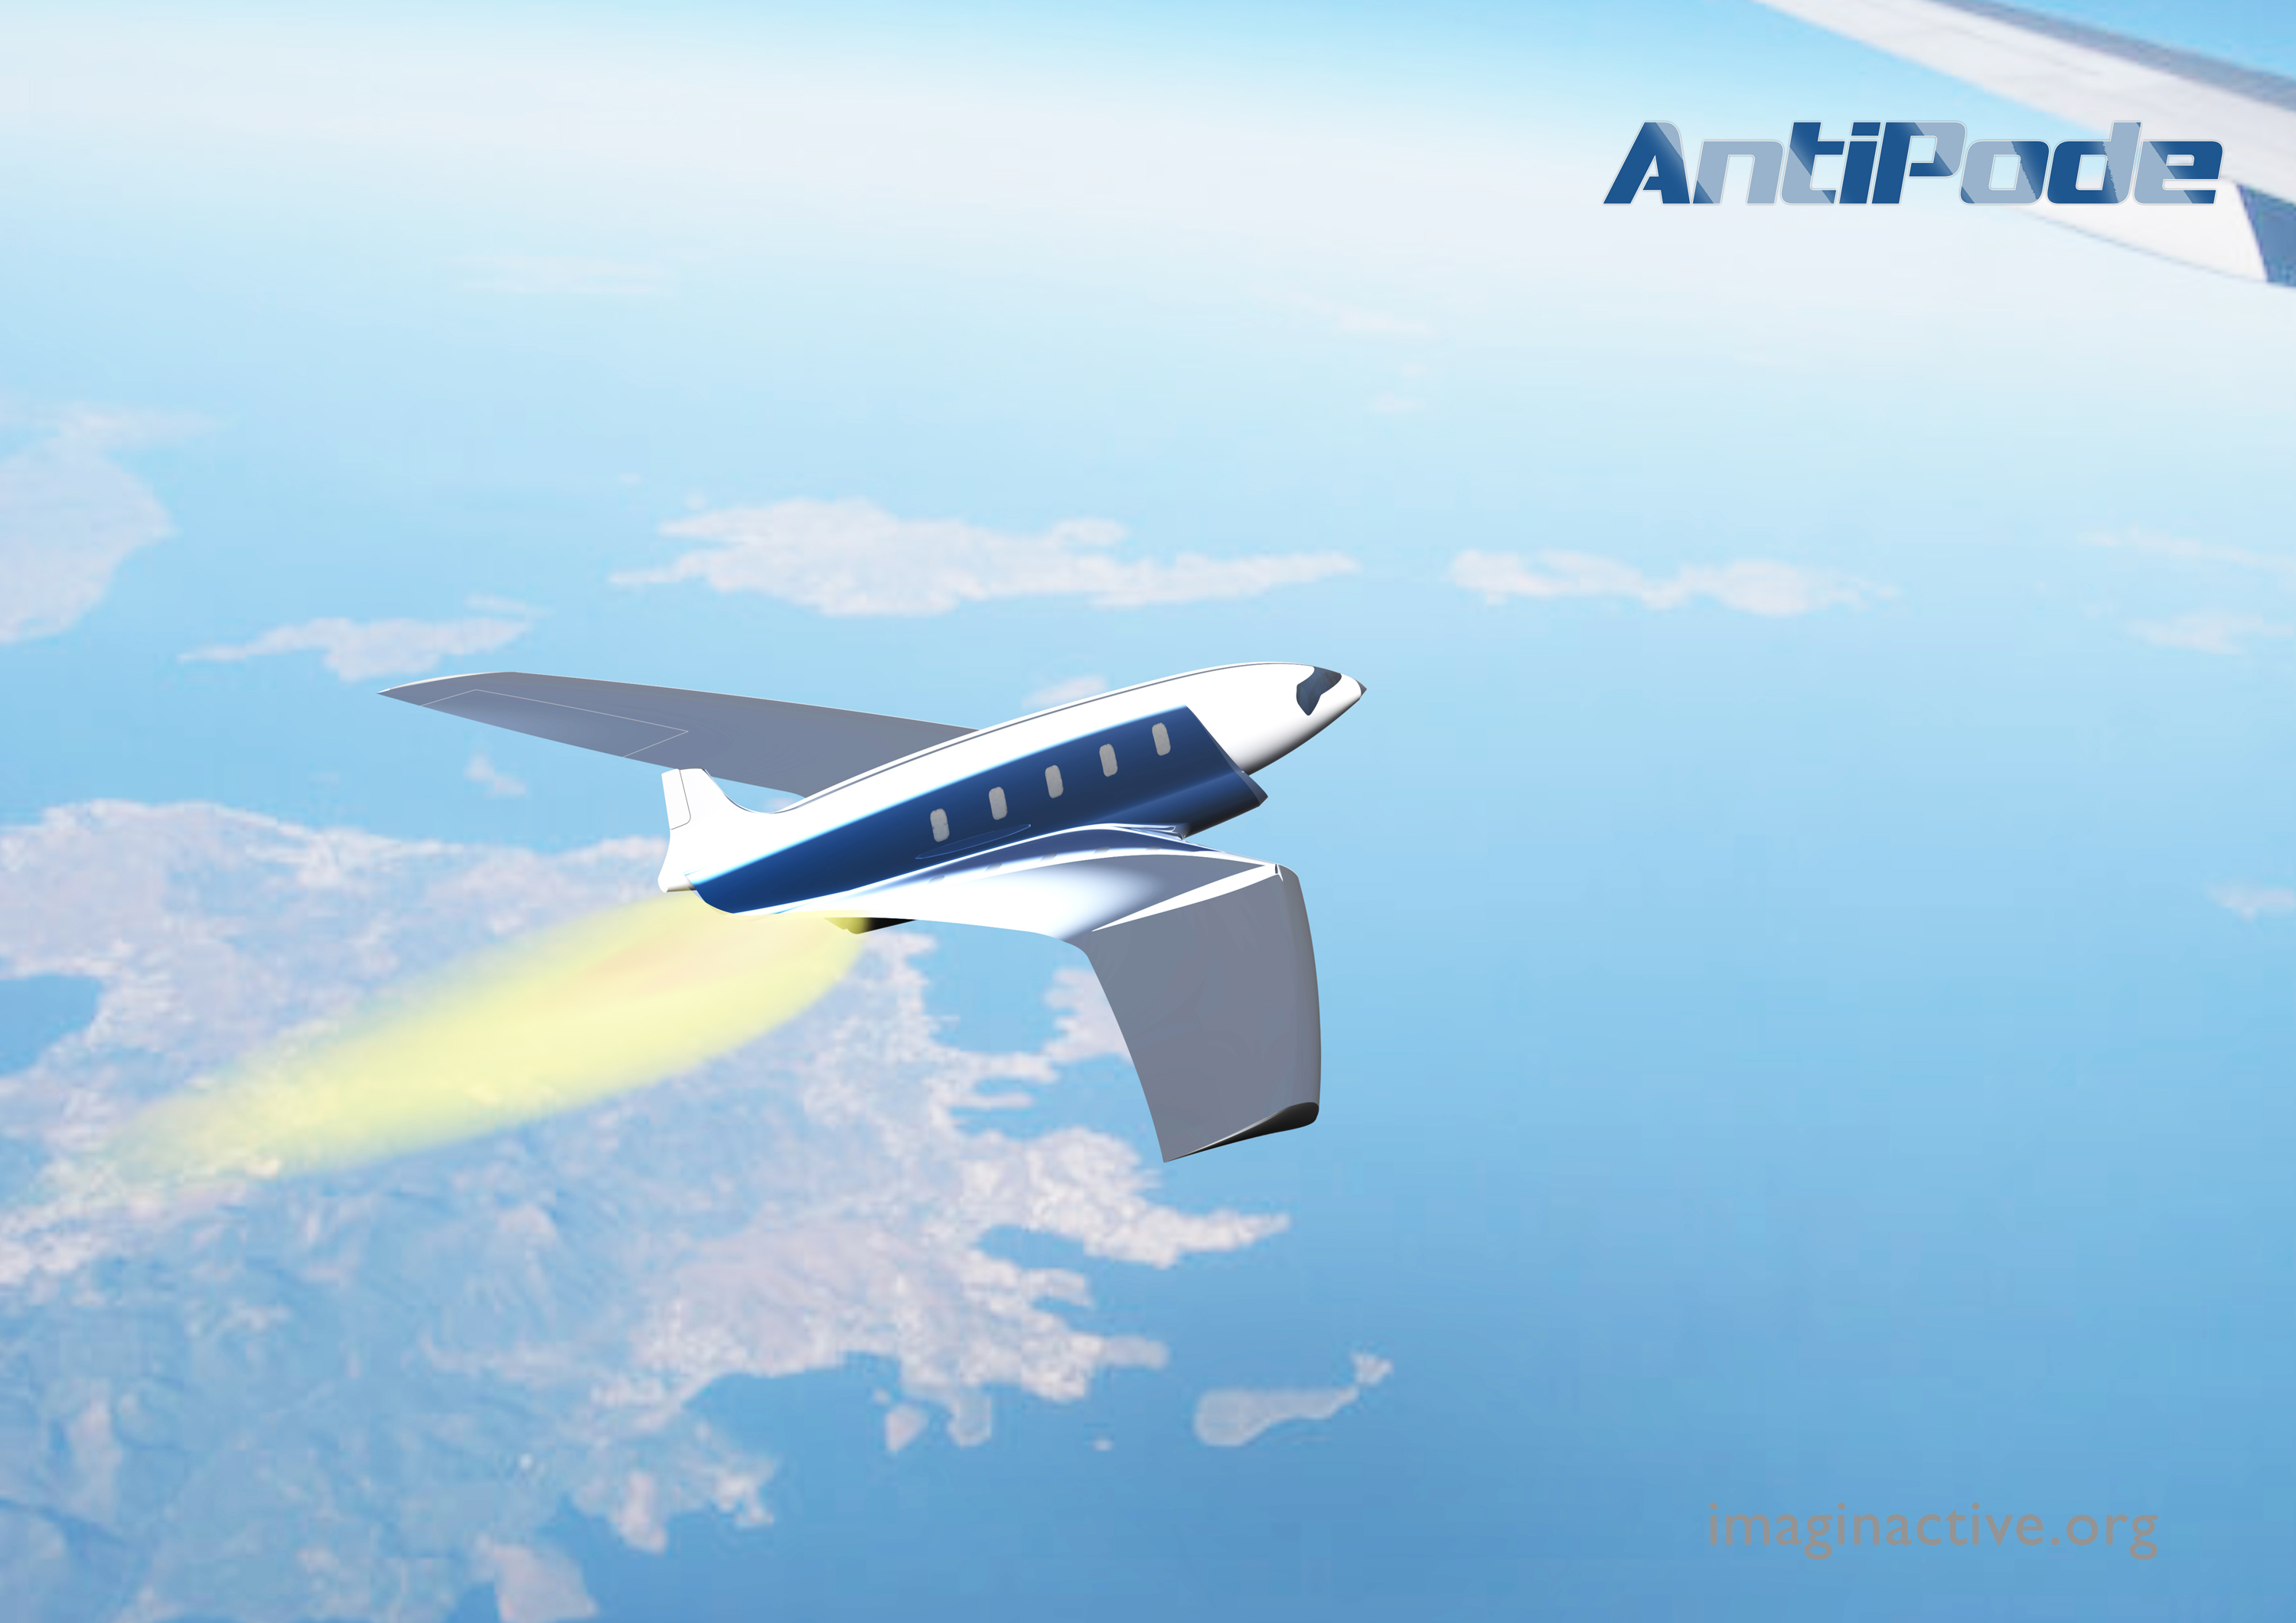 Antipode hypersonic jet: New York to London in 11 minutes